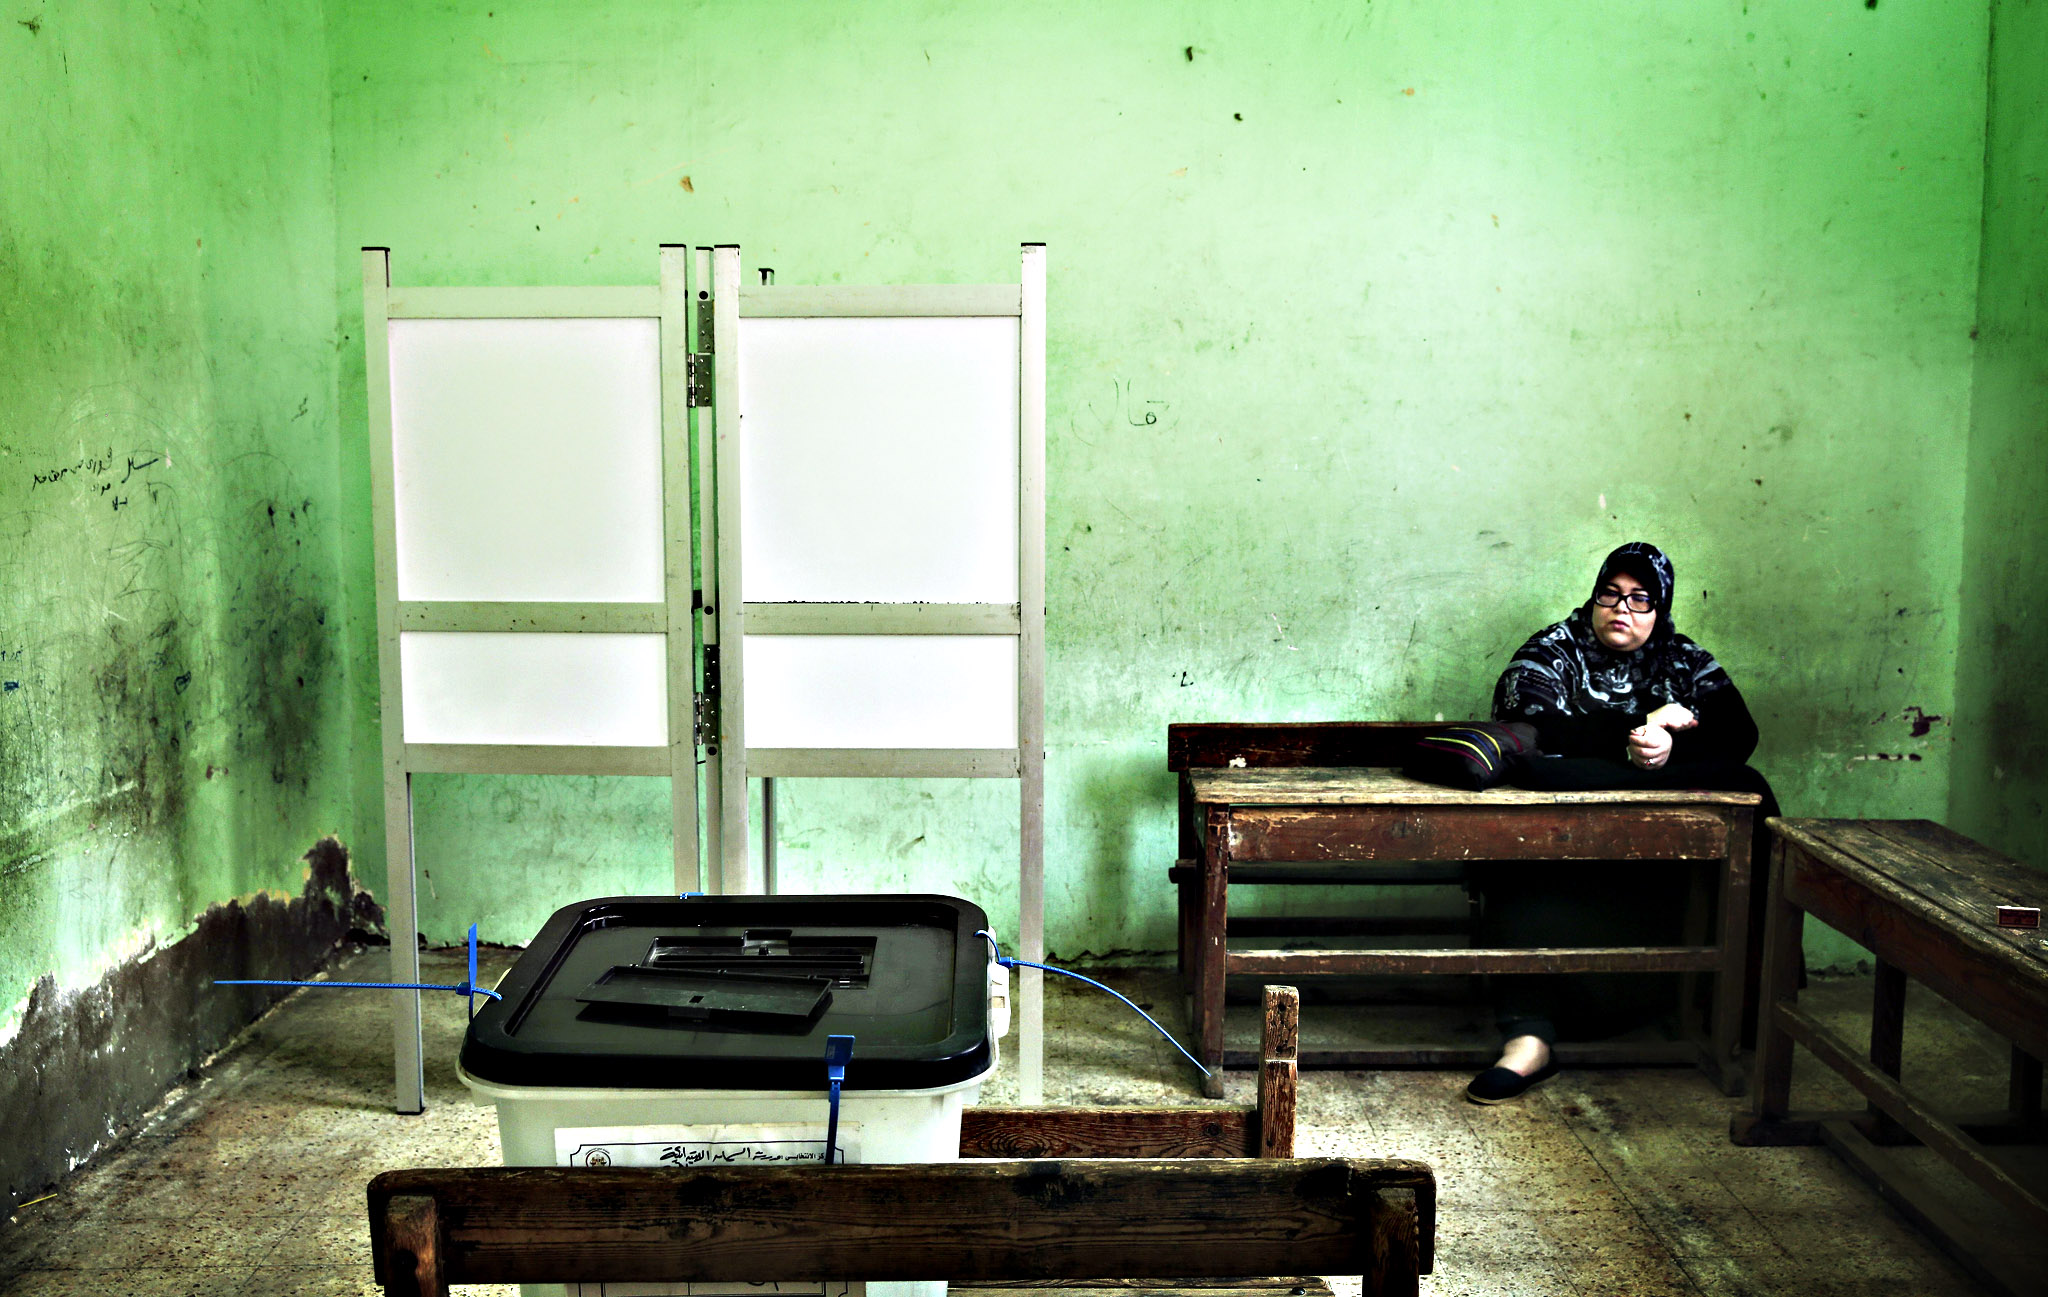 An election worker sits inside a polling station during the runoff of the first round of the parliamentary election, in Al-Haram in Giza, a neighboring city of Cairo, Egypt, Tuesday, Oct. 27, 2015.